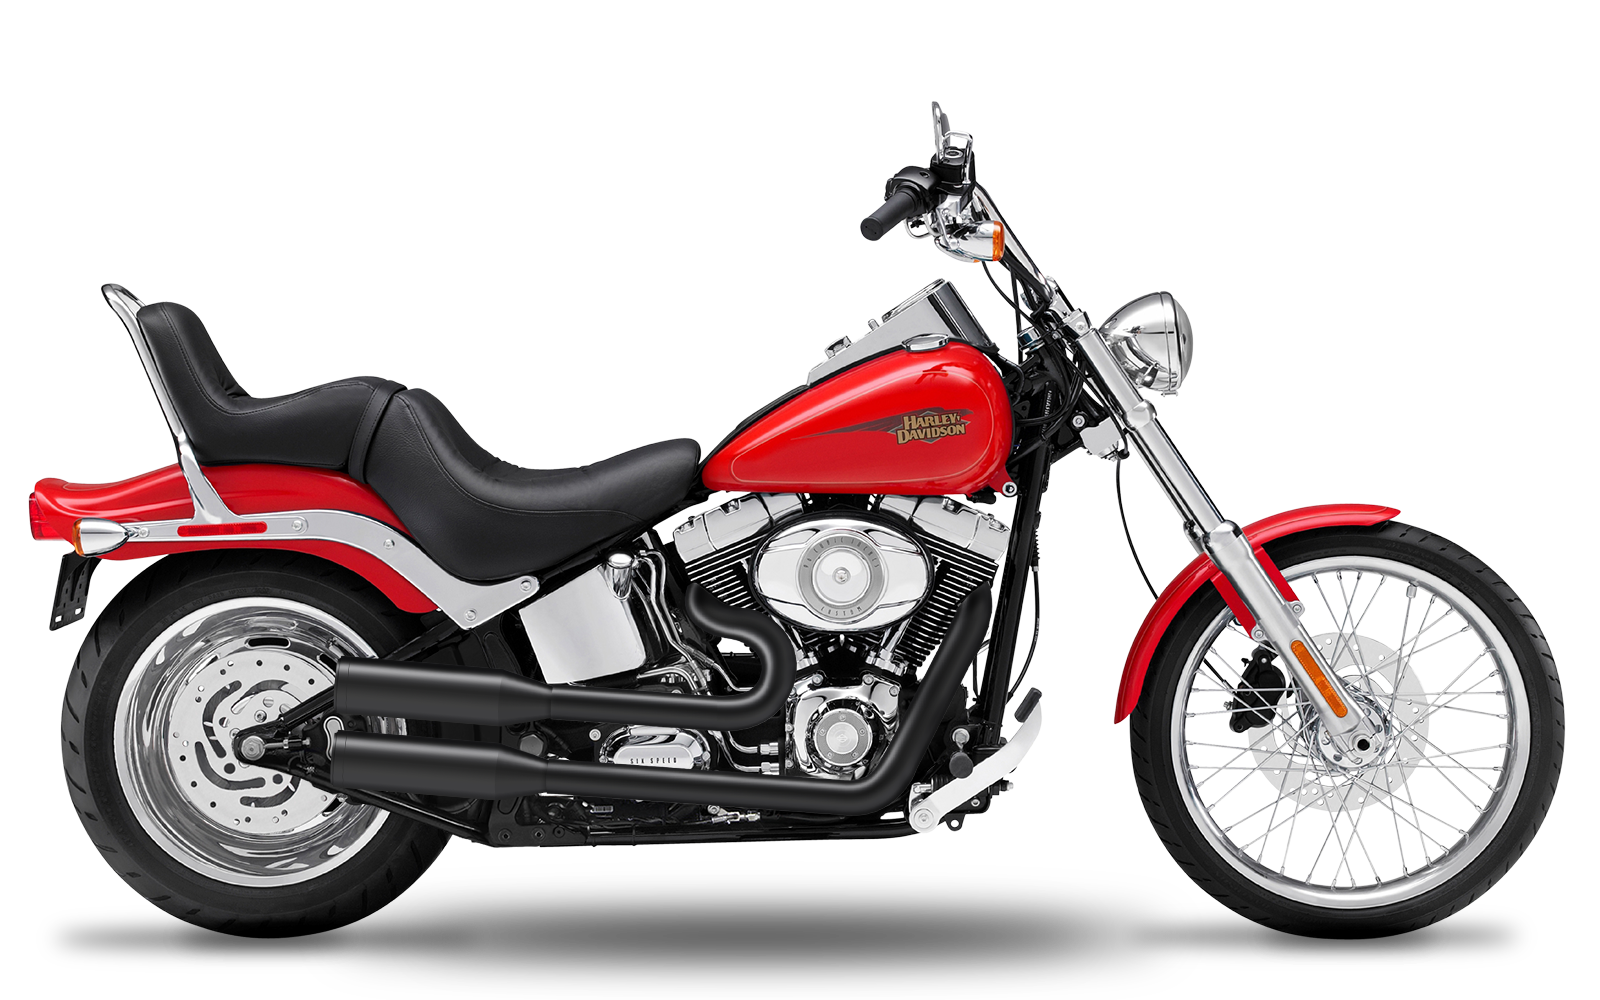 Softail - Custom - TC96 - 2007-2011 - Complete systems